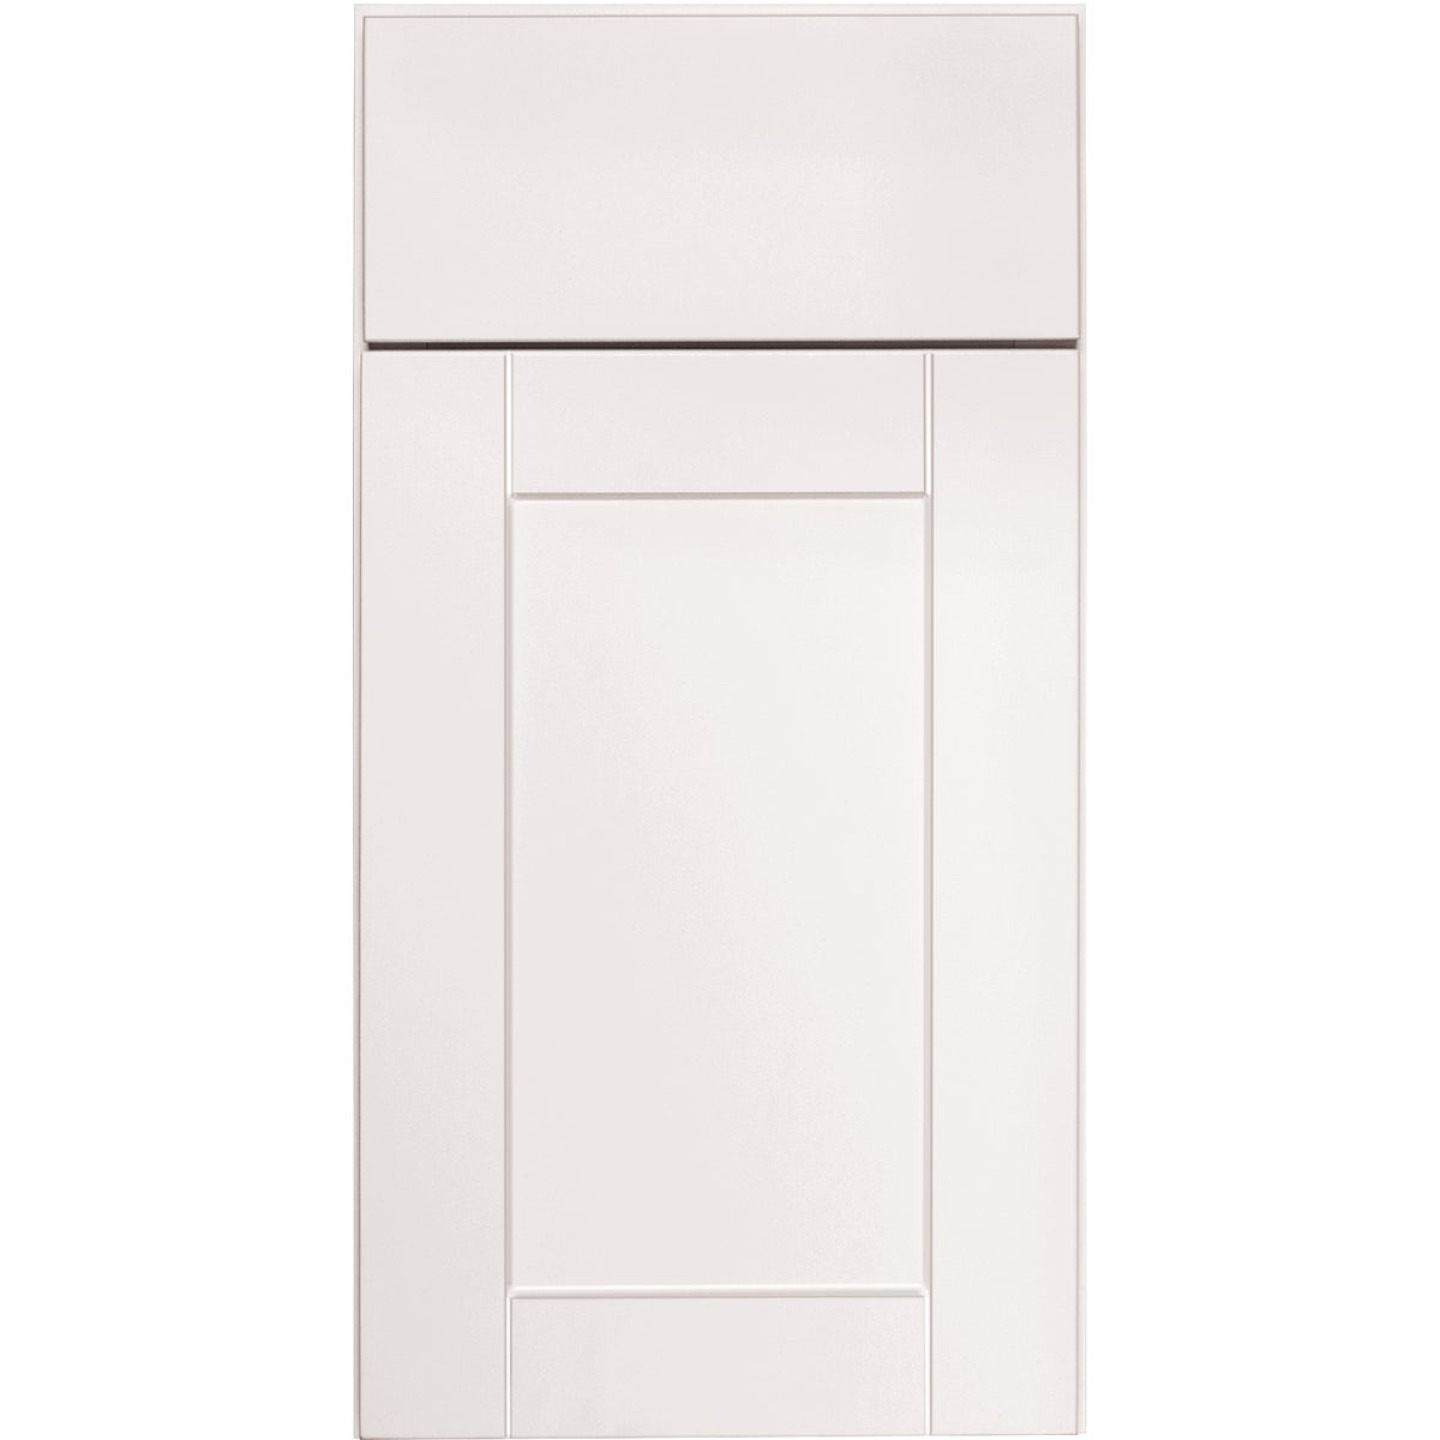 Continental Cabinets Andover Shaker 36 In. W x 34-1/2 In. H x 21 In. D White Vanity Base, 2 Door Image 3